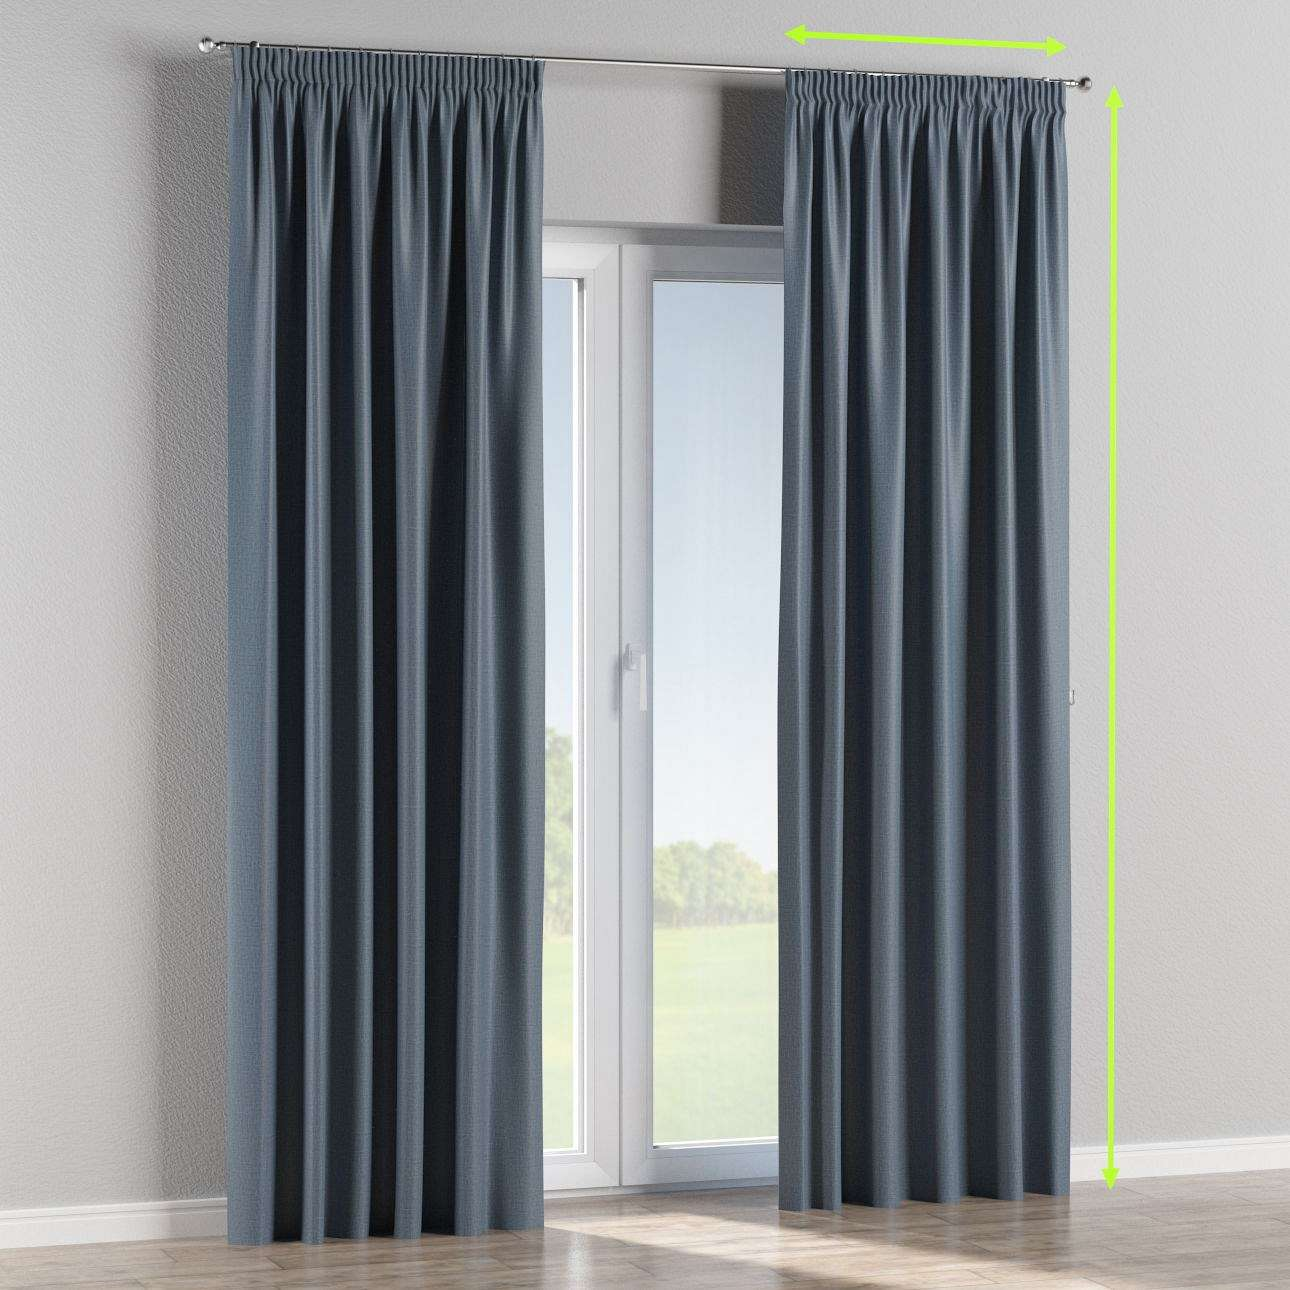 Blackout pencil pleat curtain in collection Blackout, fabric: 269-67